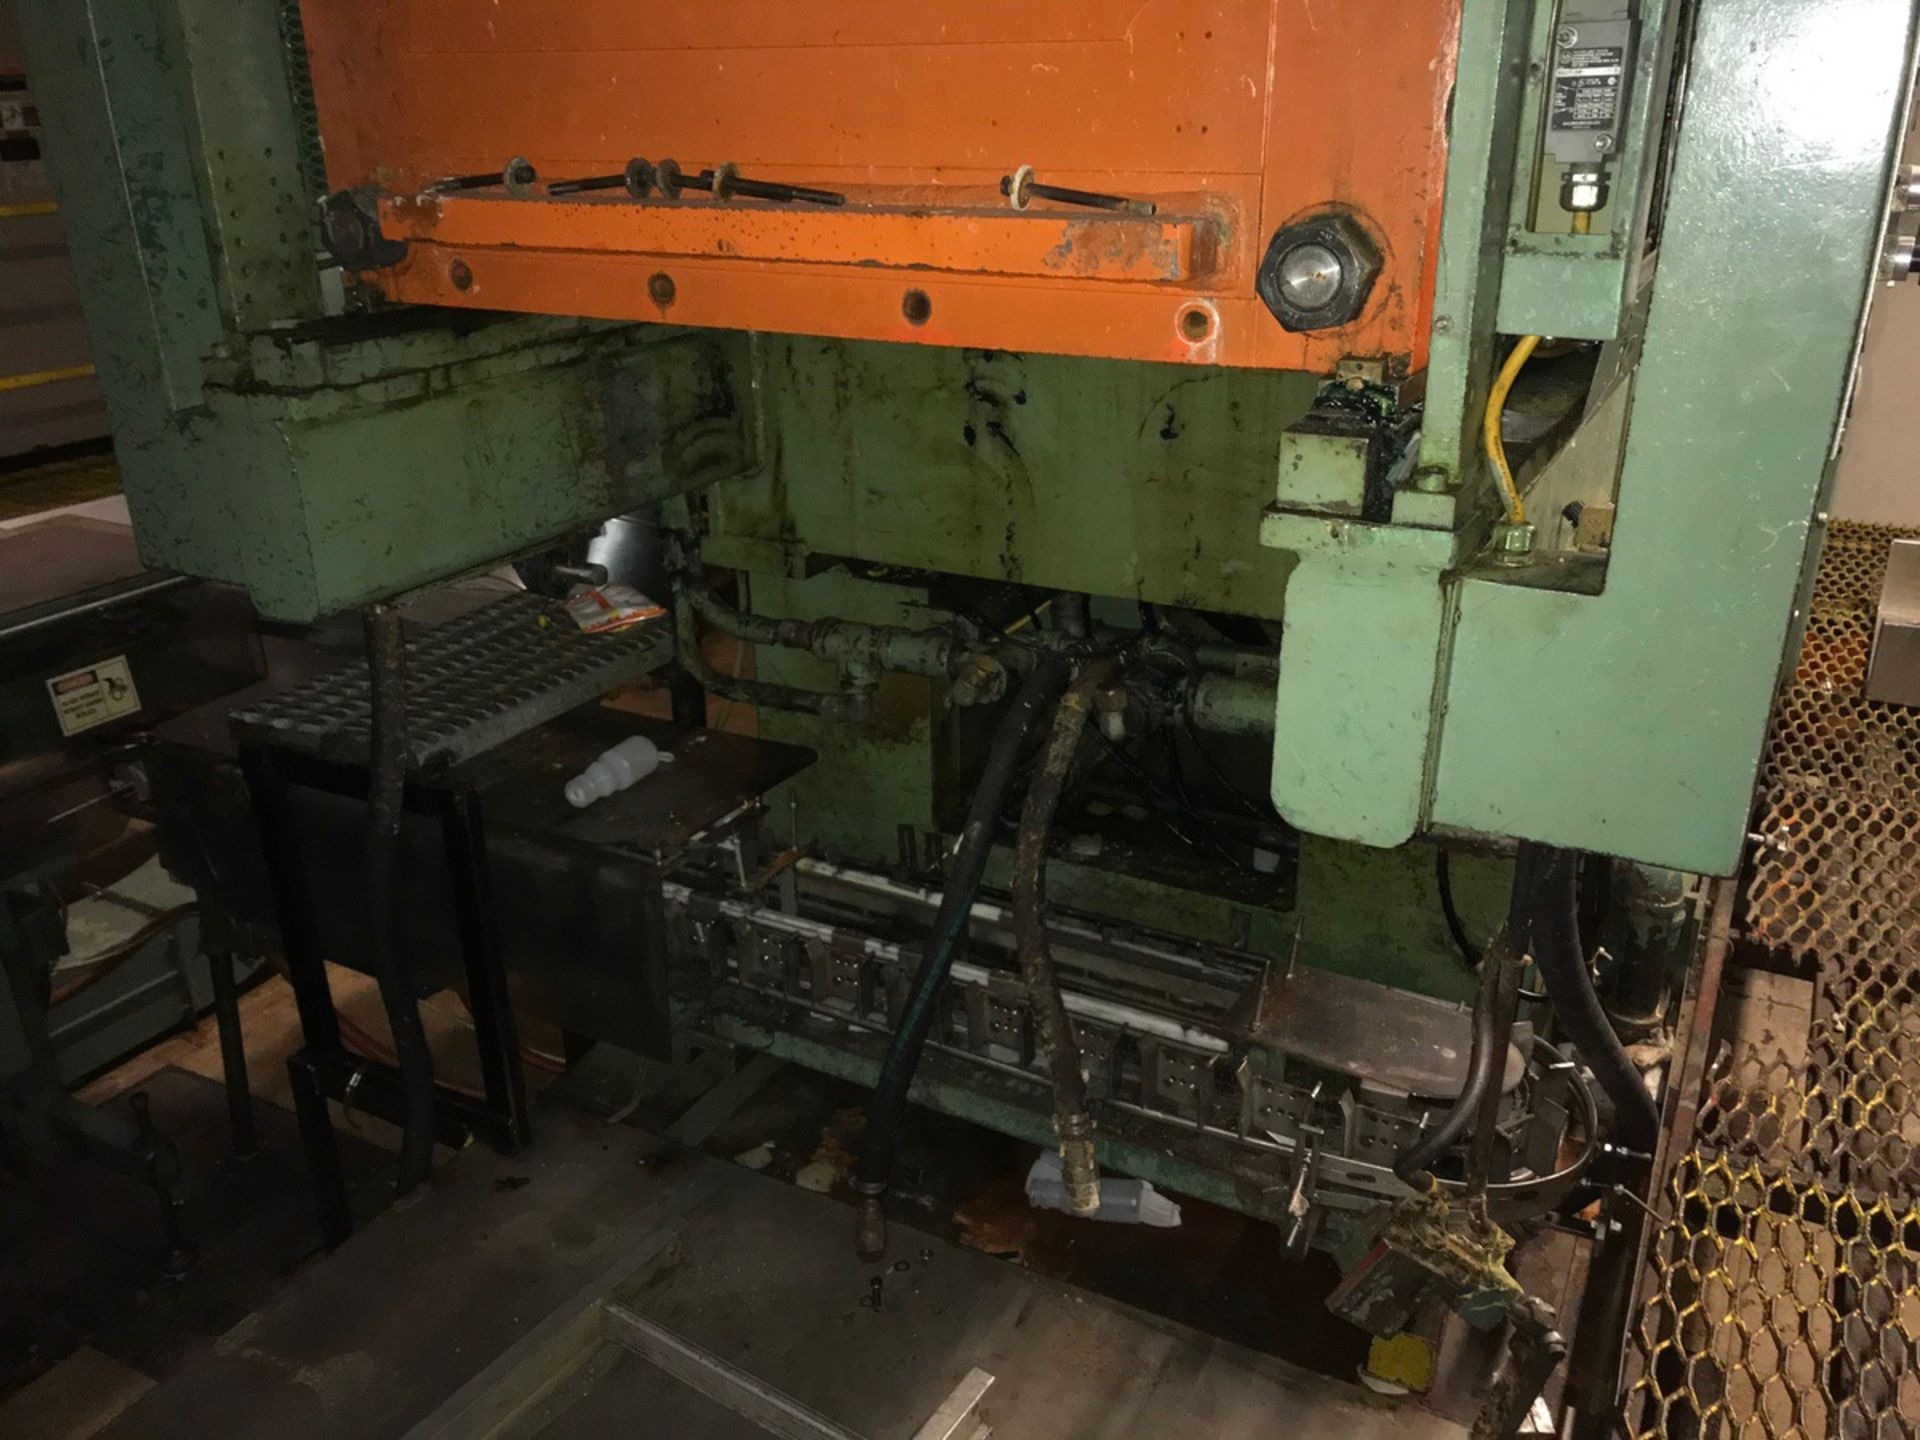 Uniloy 7-Head Blow Molding Machine, M# 250R1, S/N 250R1-3944 | Rig Fee: $14500 - Image 2 of 8